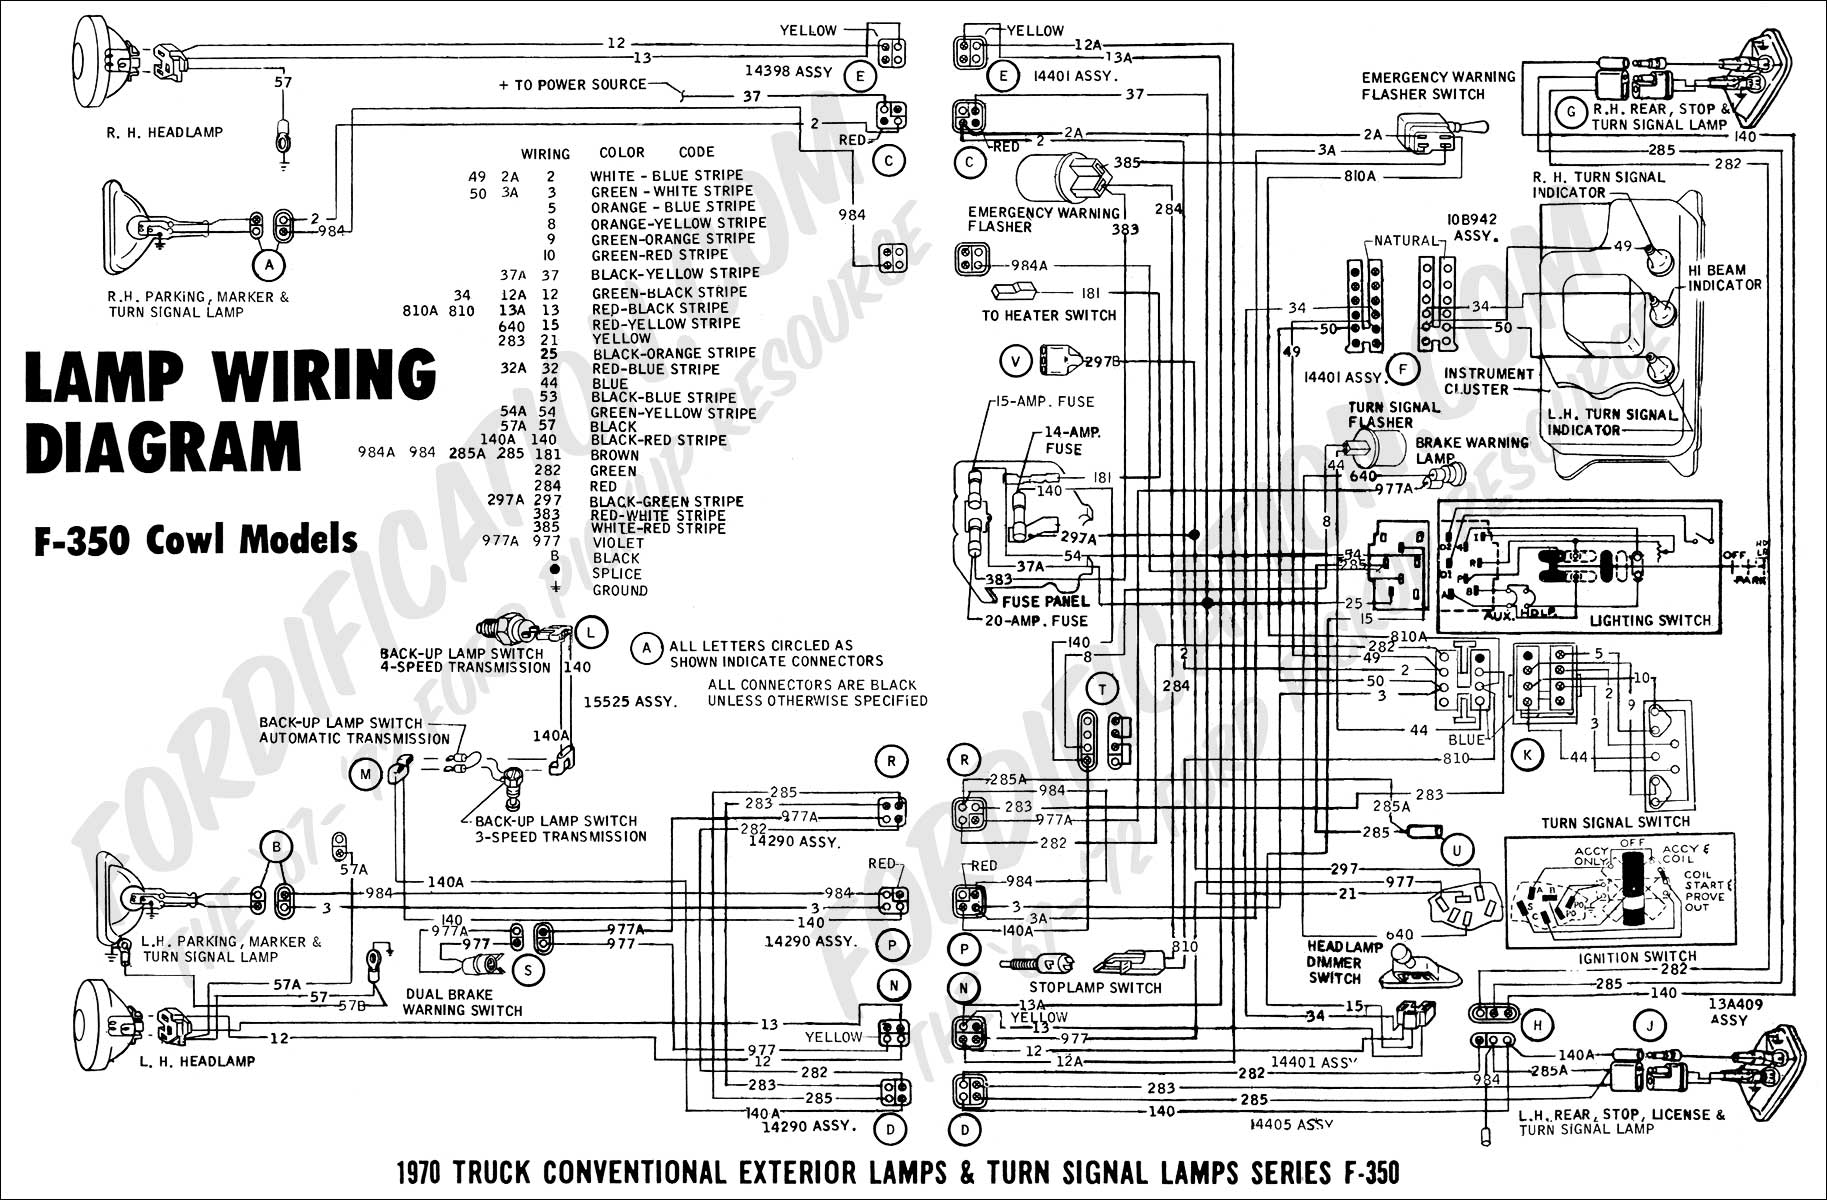 1985 Ford F350 Wiring Diagram Schematic Not Lossing 1999 Ranger Computer Diagrams Rh 34 Fitness Mit Trampolin De